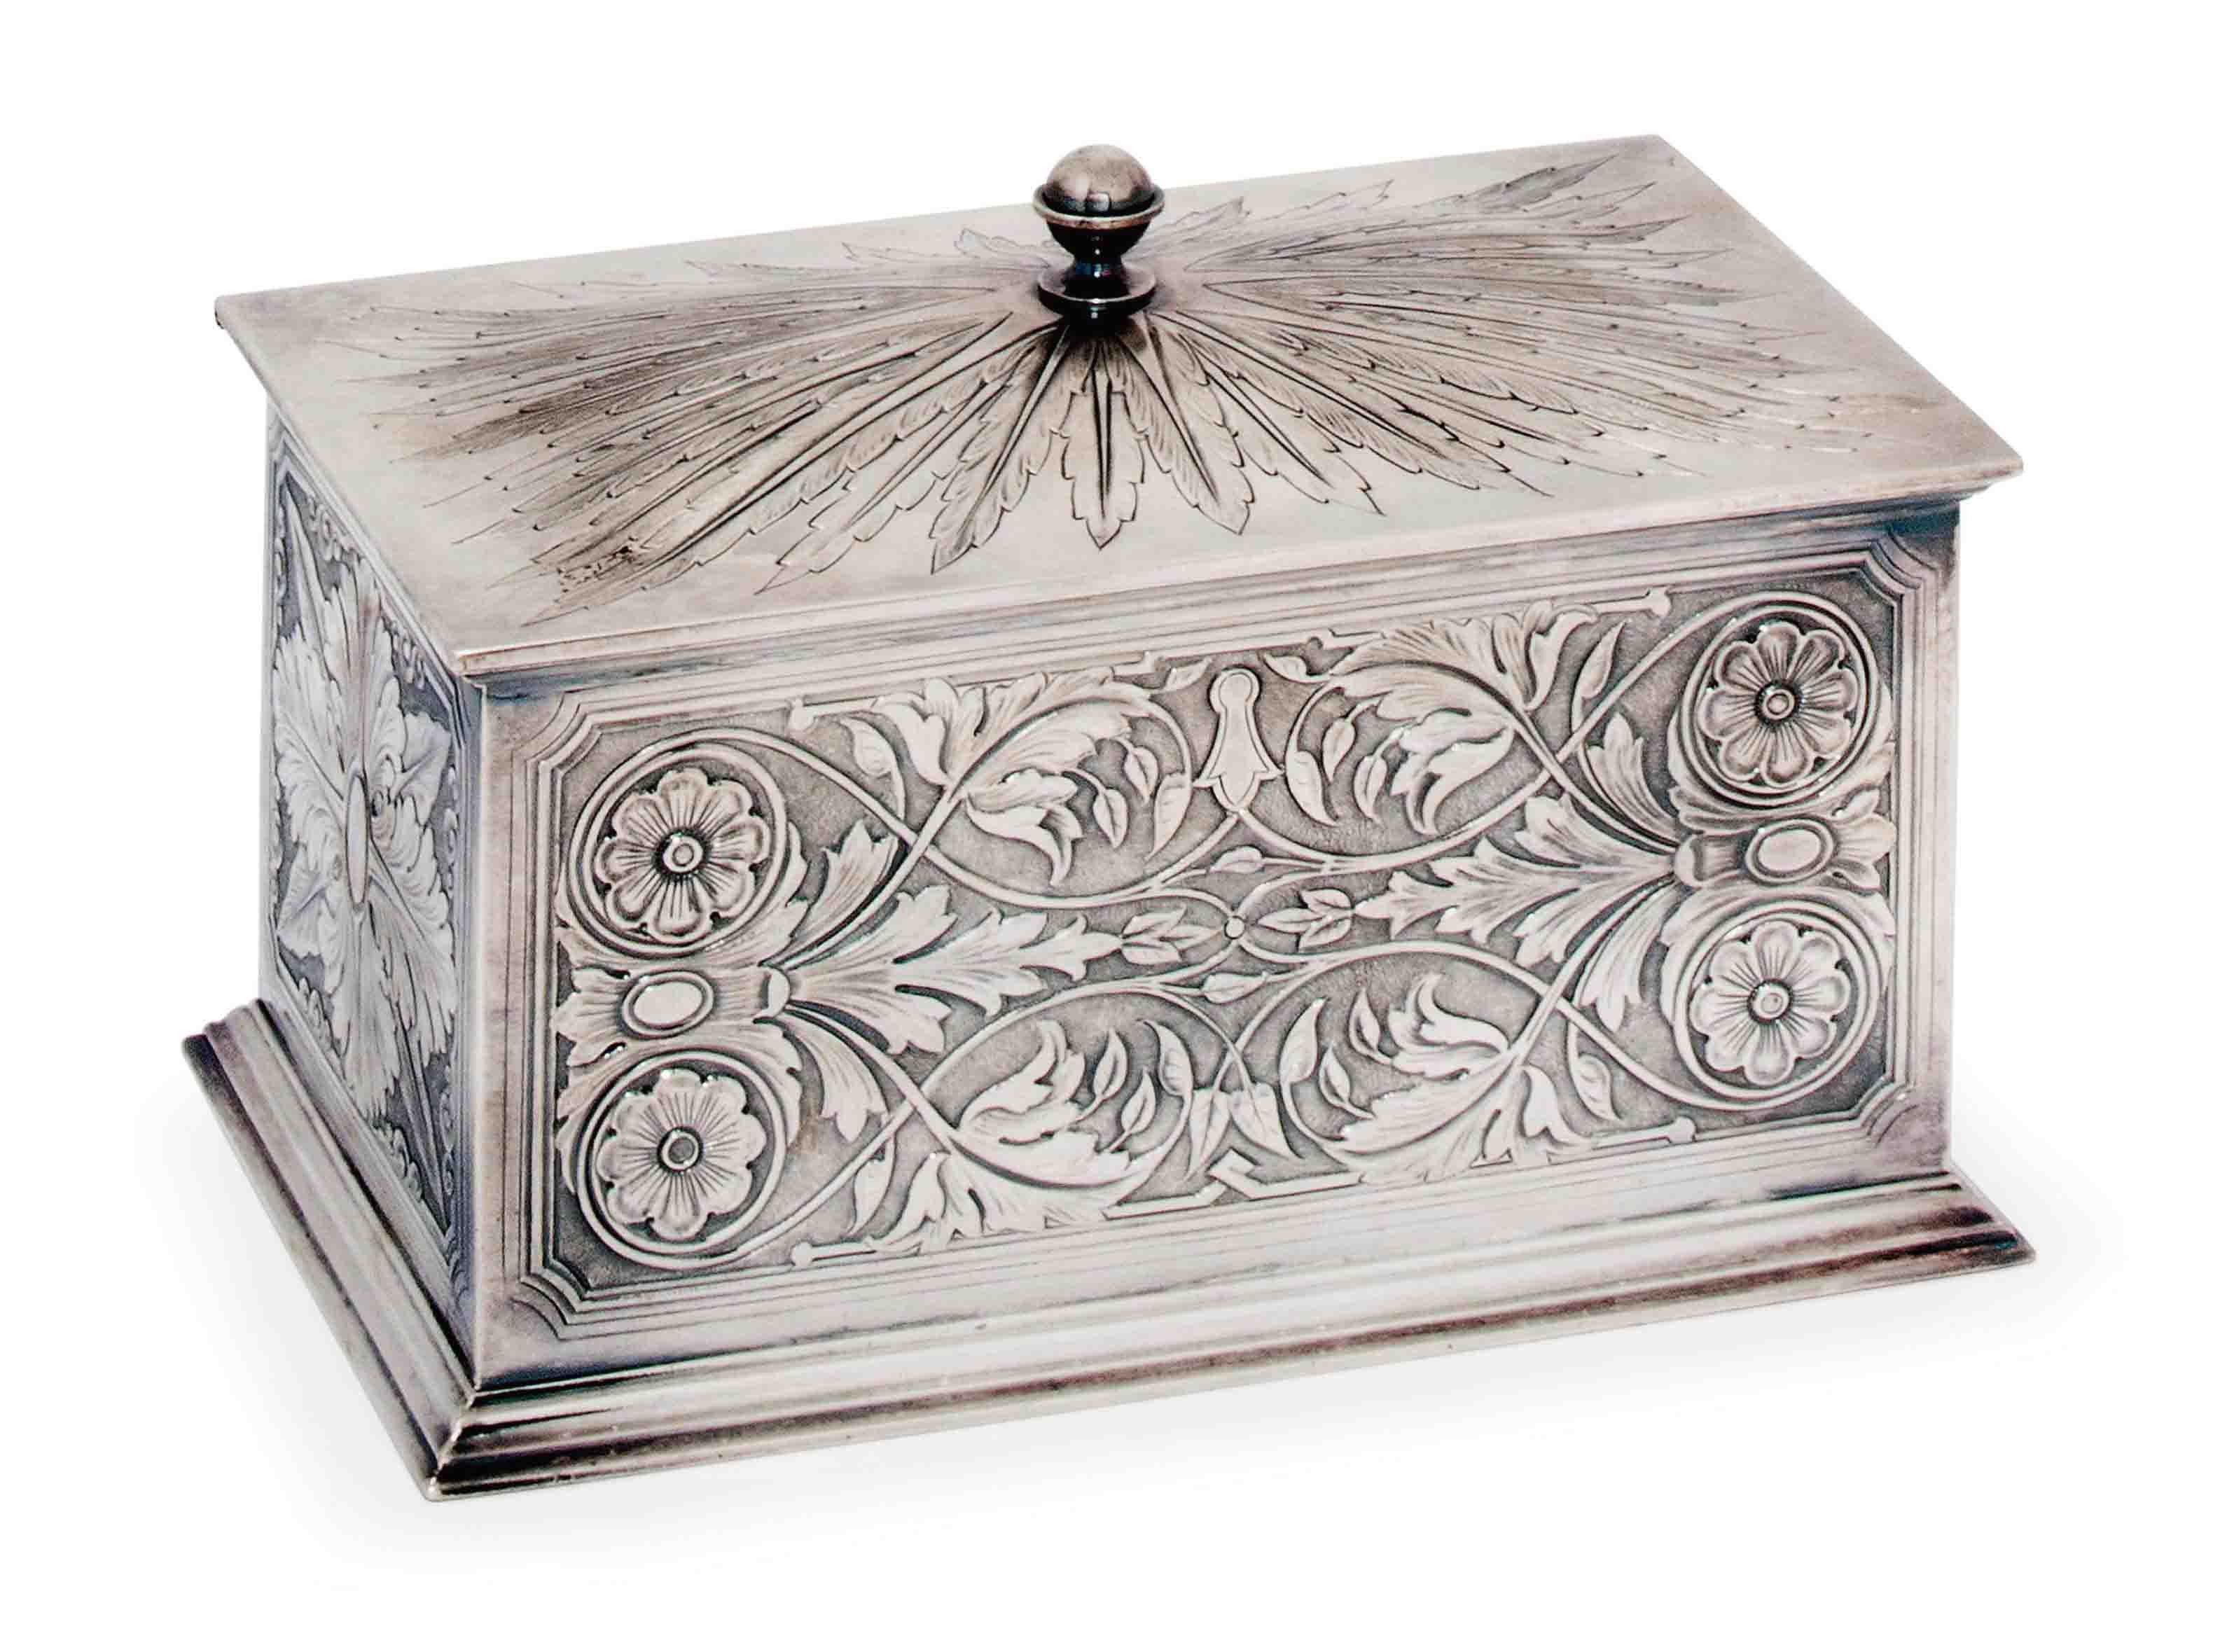 A VICTORIAN SILVER BISCUIT BOX